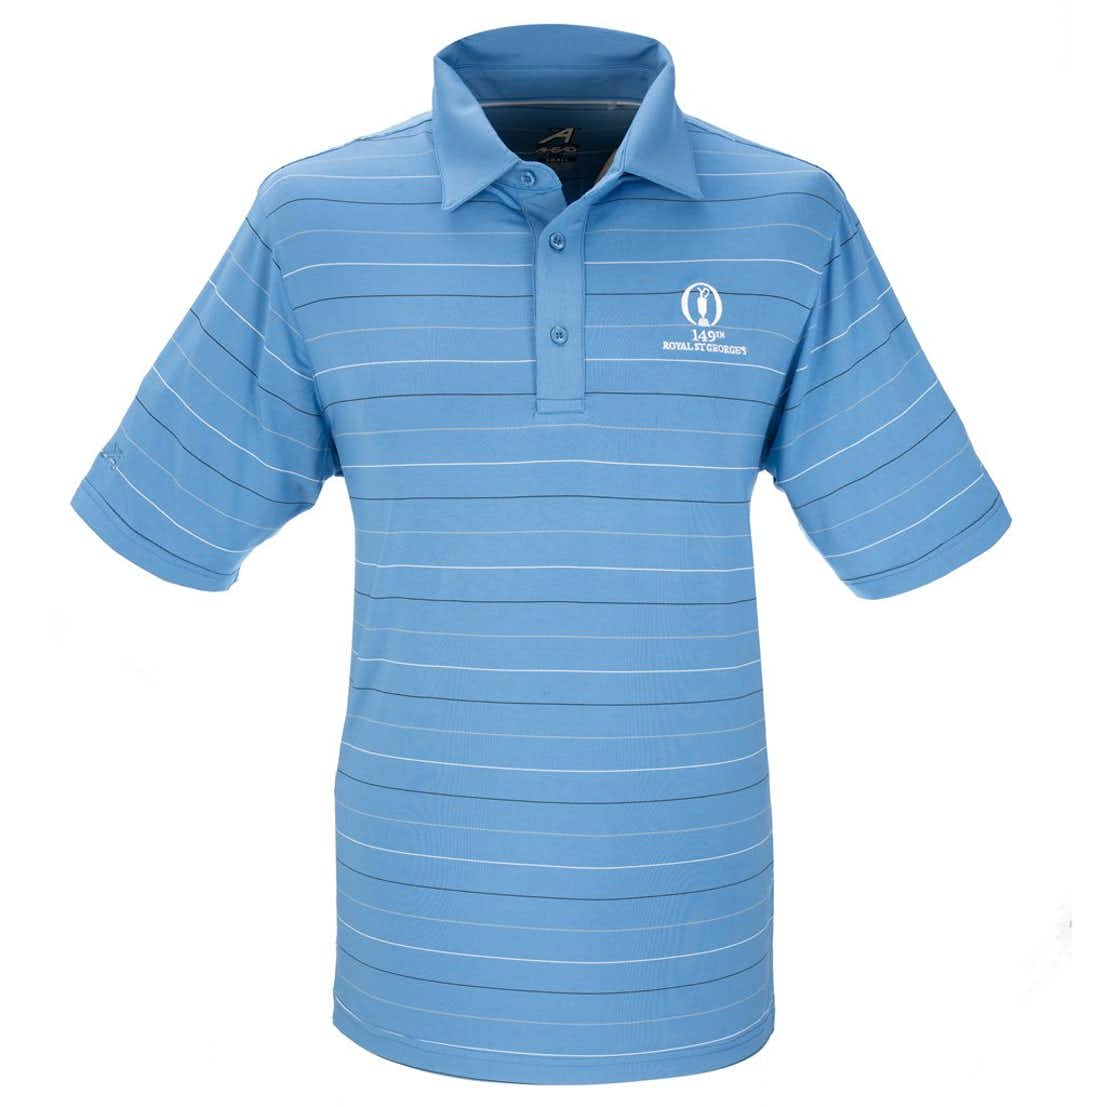 149th Royal St George's Ahead Striped Polo - Blue